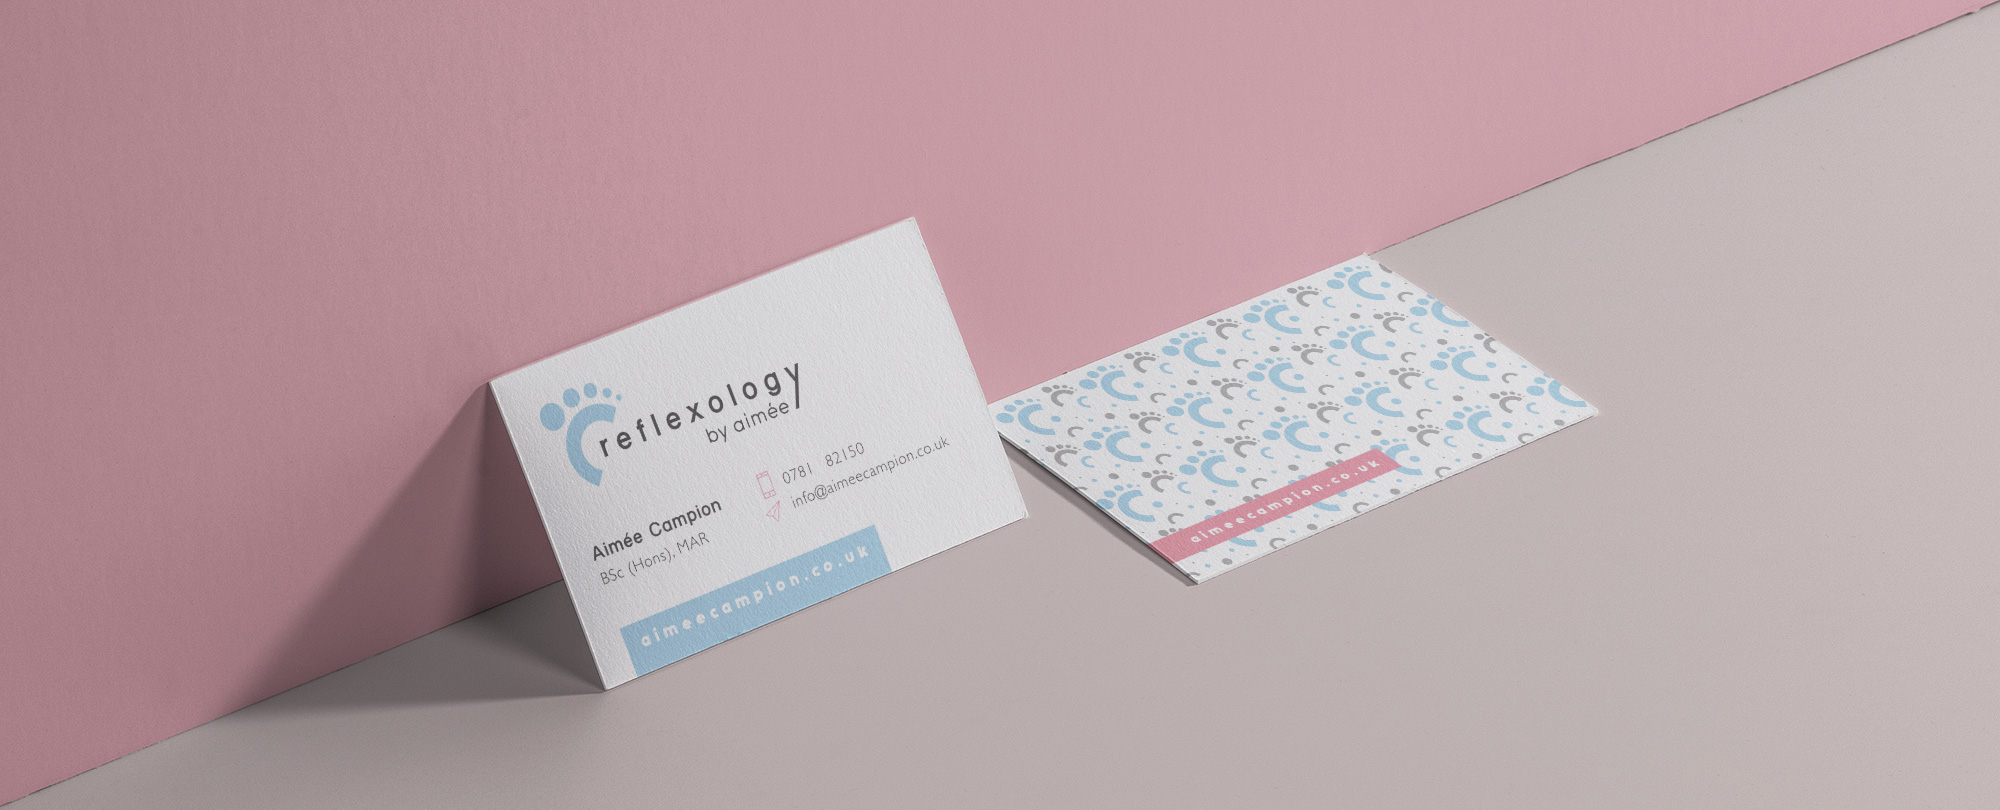 Aimee_Campion_Business_cards.jpg